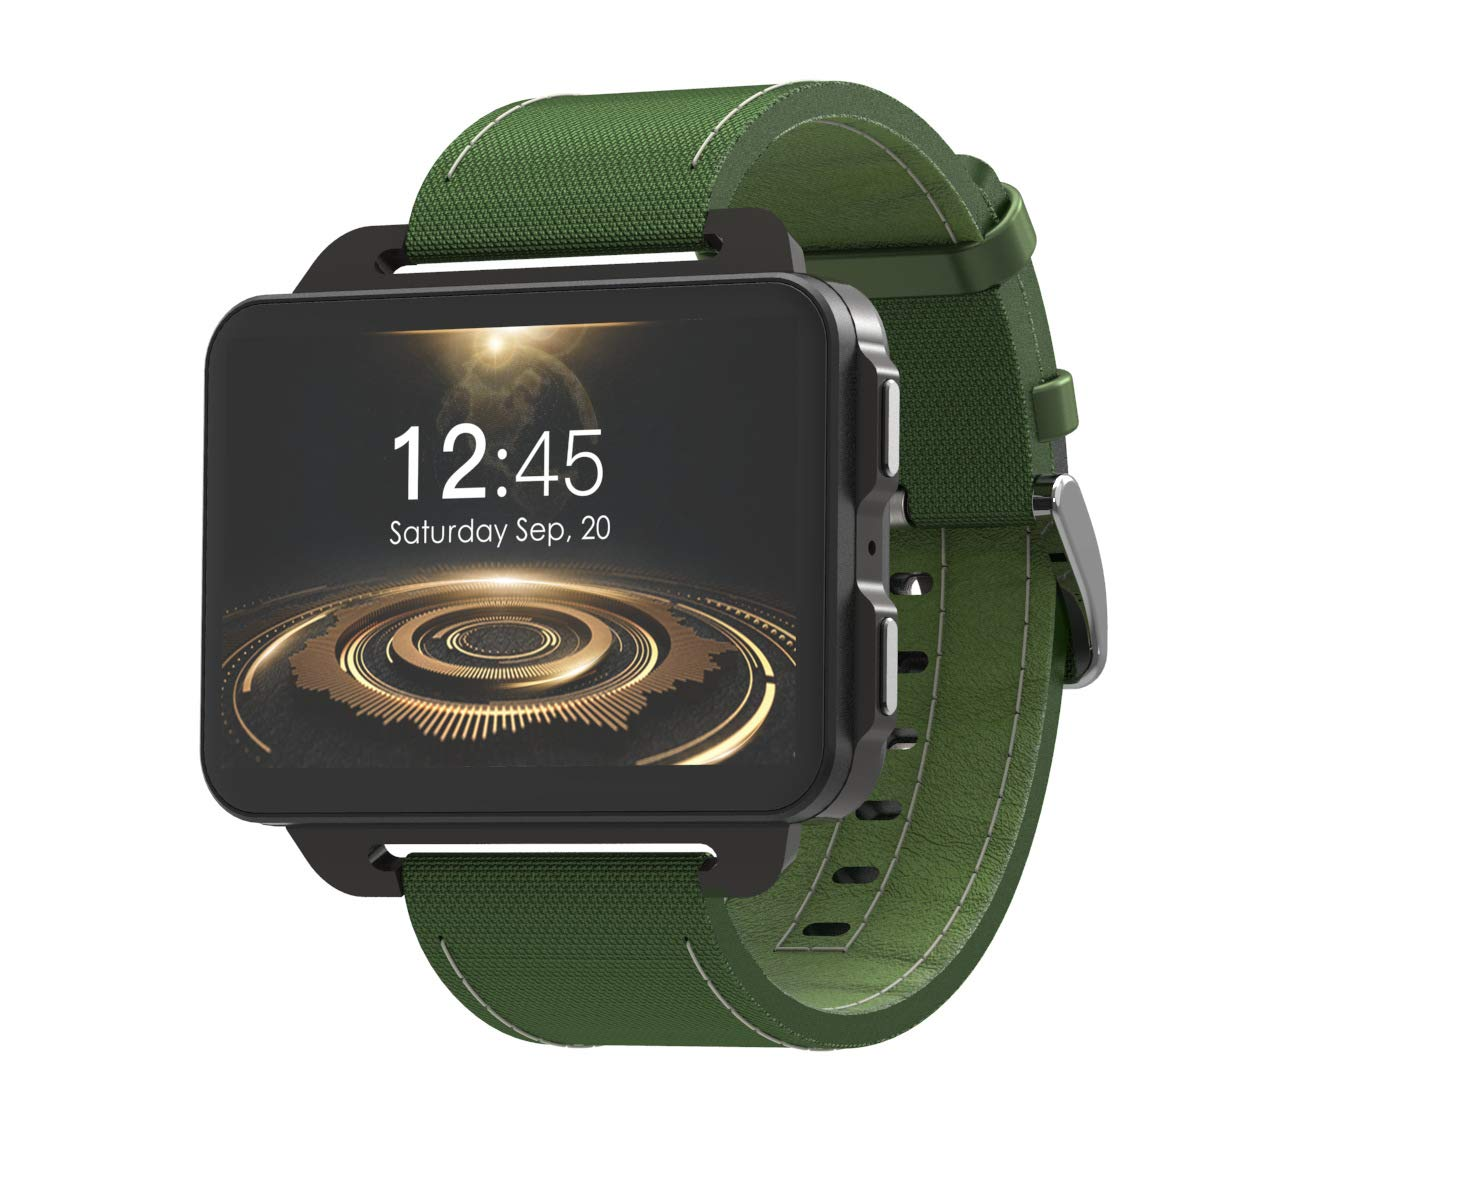 RONSHIN Gifts for Boys,Smart 3G Phone Watch GPS+WiFi Positioning DM99 Android Phone Watch for Adult and Kids Green by RONSHIN